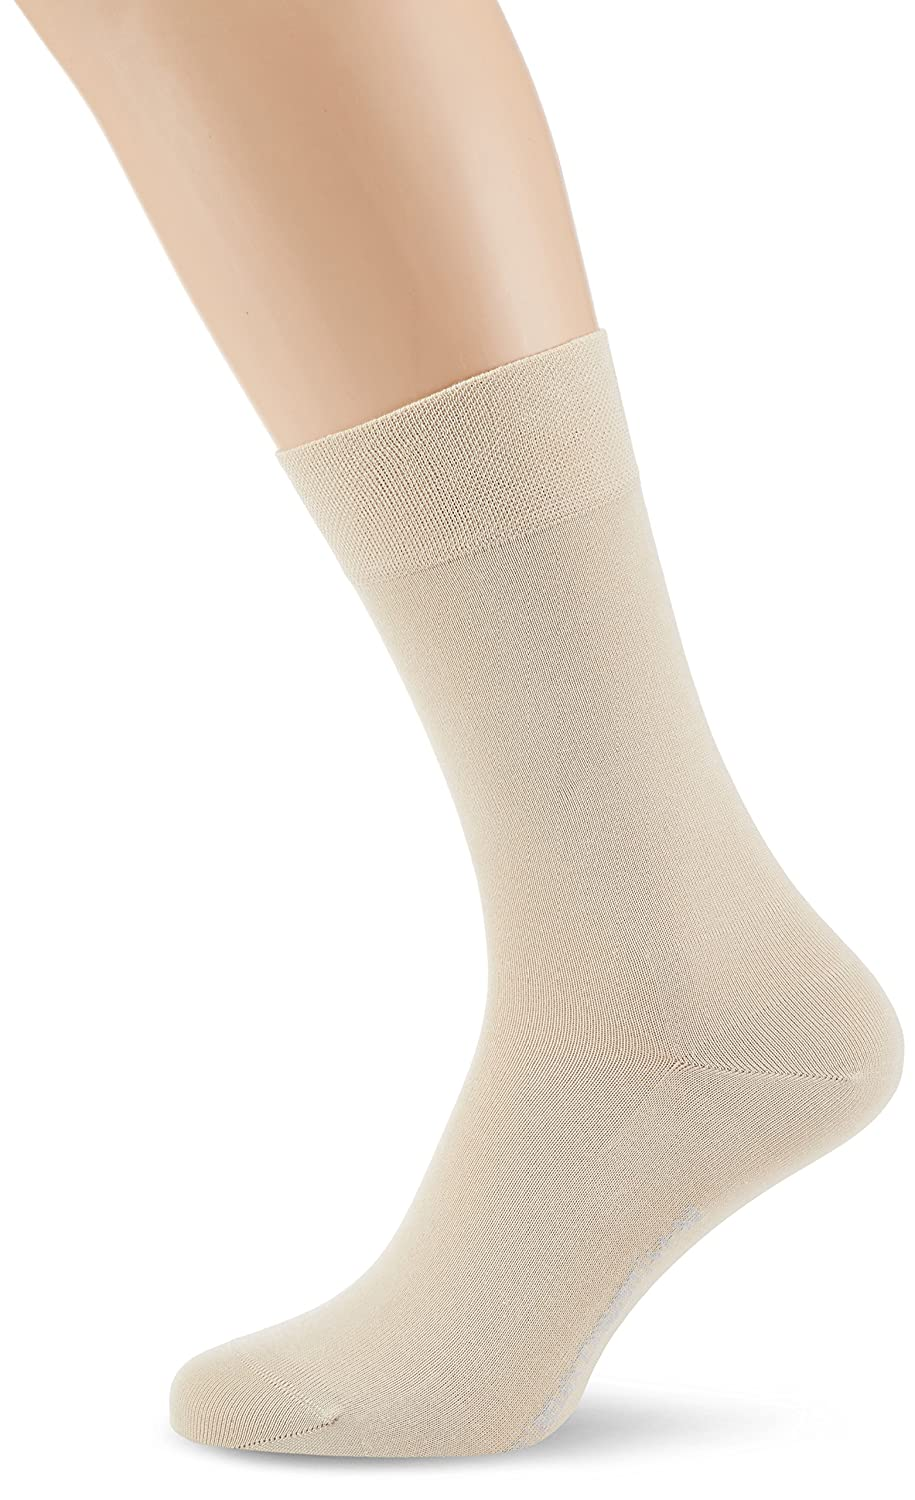 Hudson Relax Exquisit Calcetines para Hombre